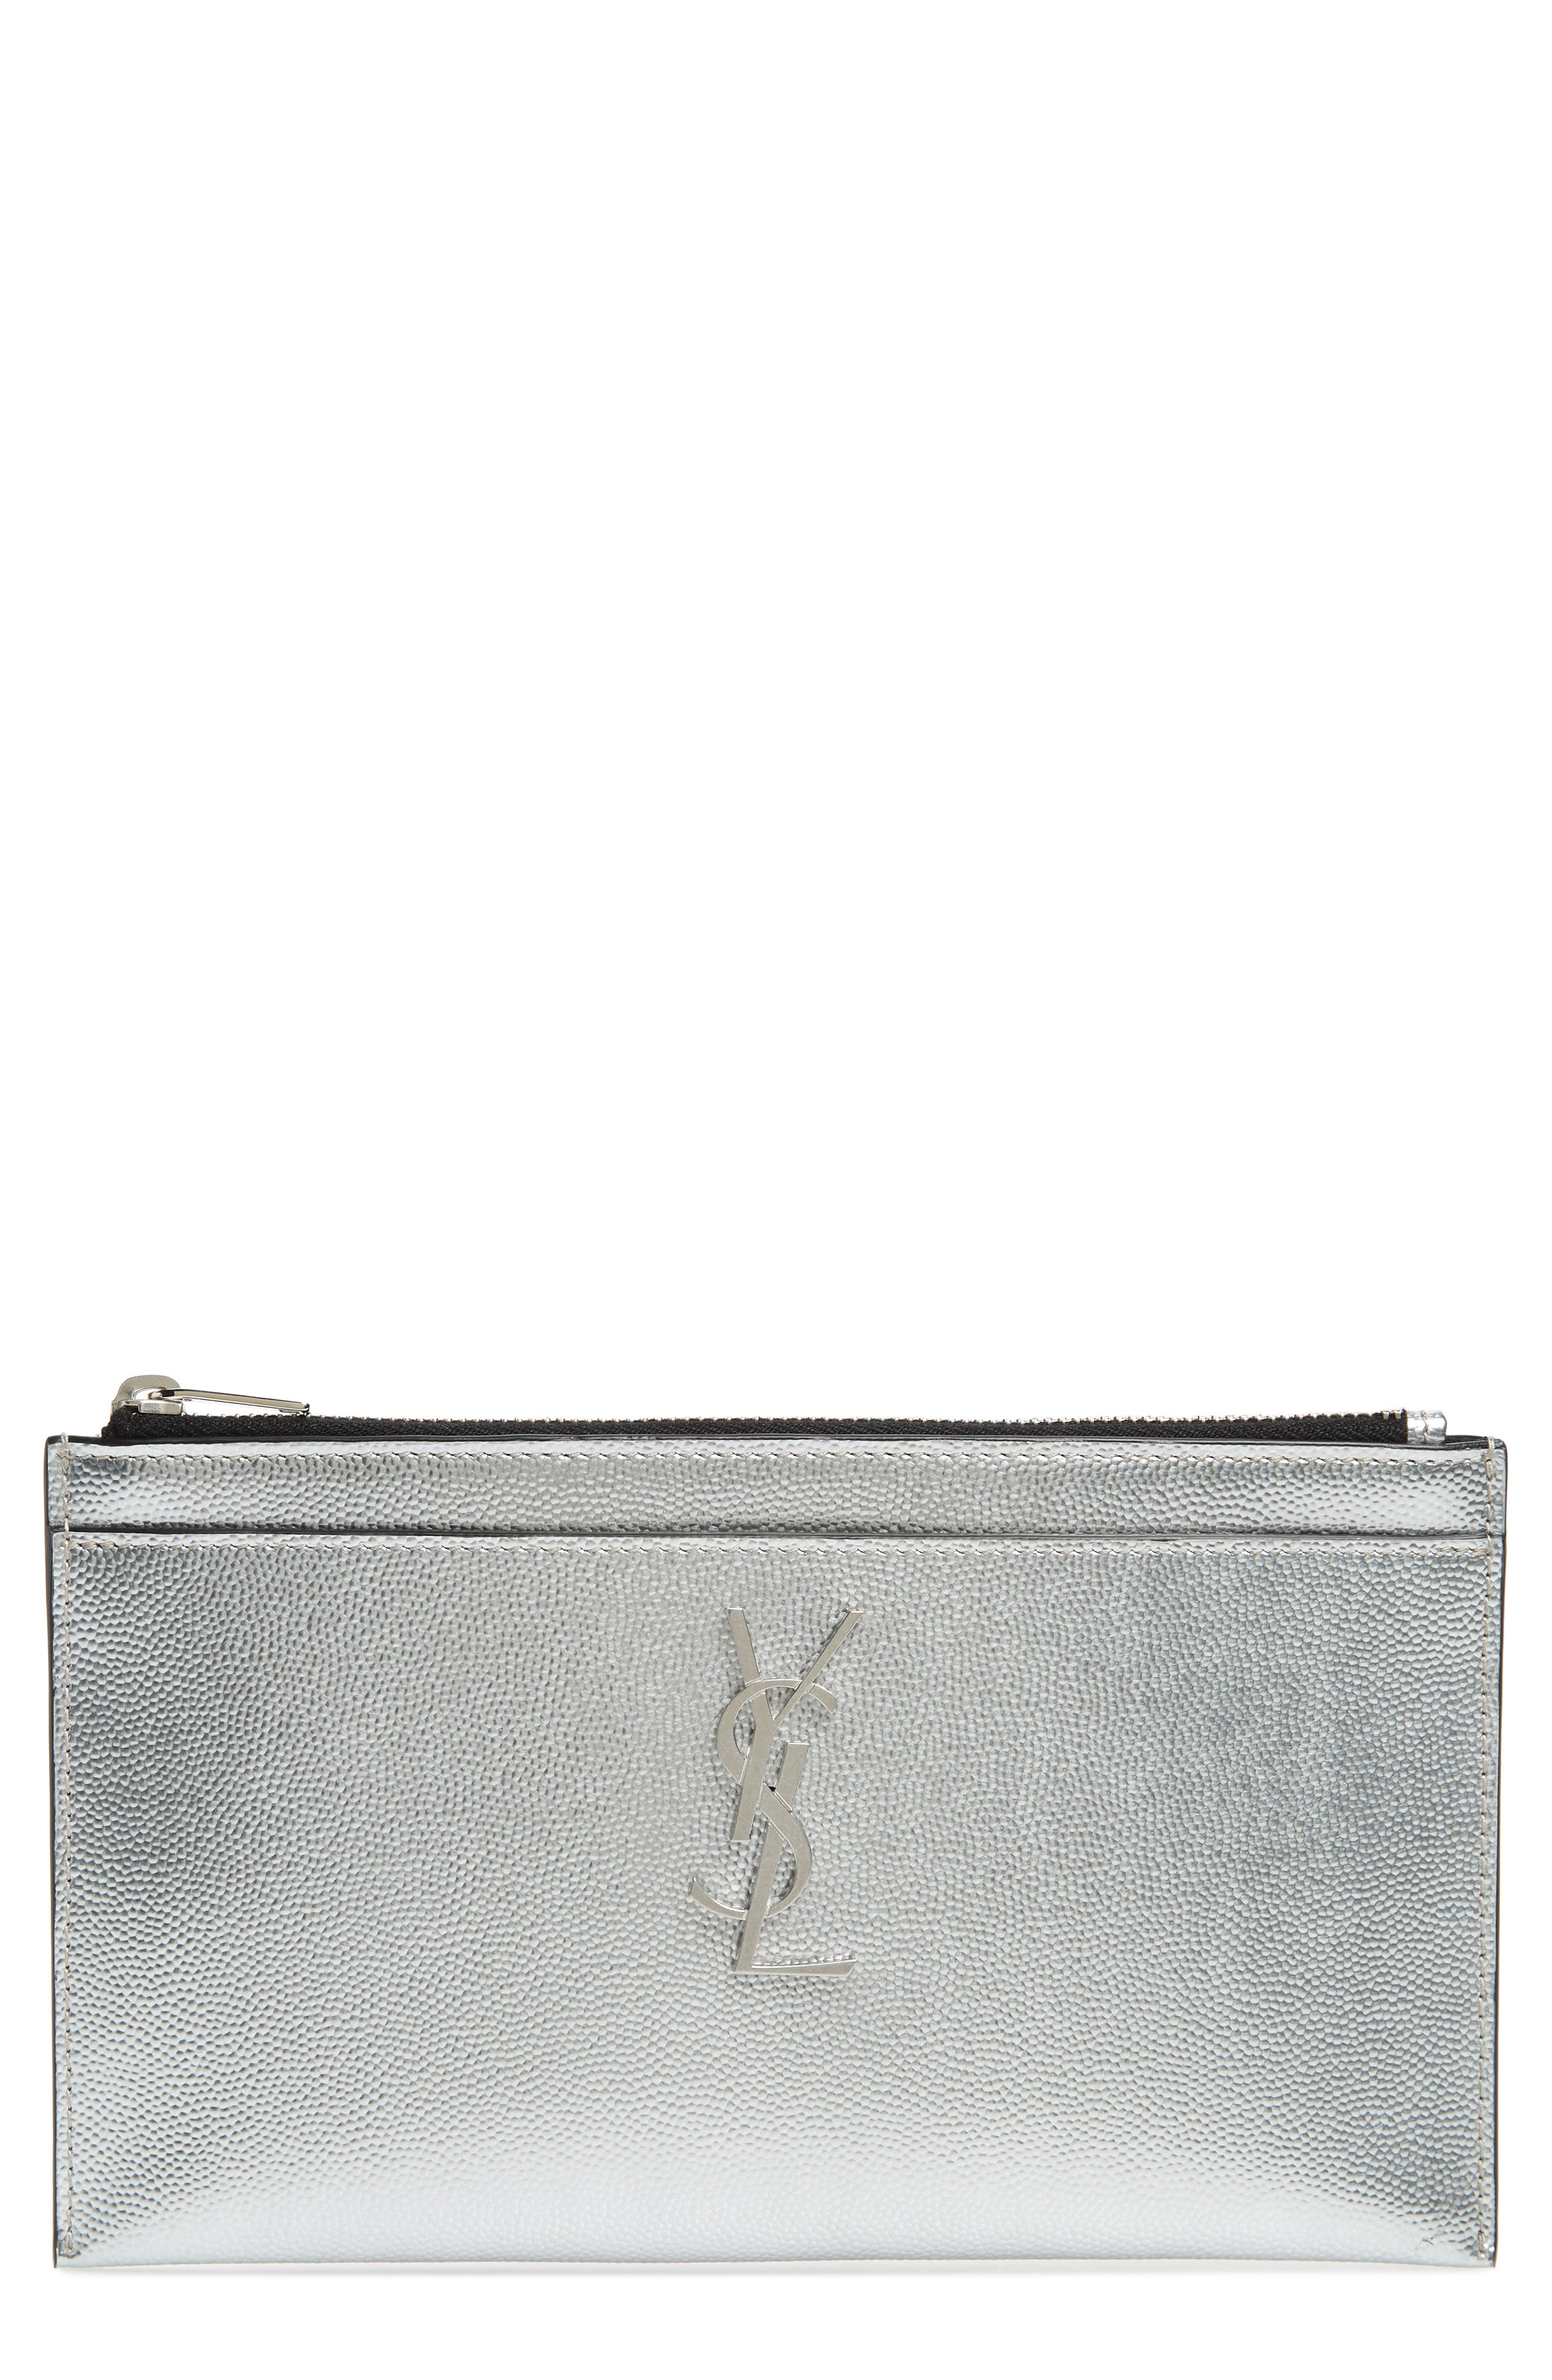 Metallic Leather Pouch,                             Main thumbnail 1, color,                             ARGENTO